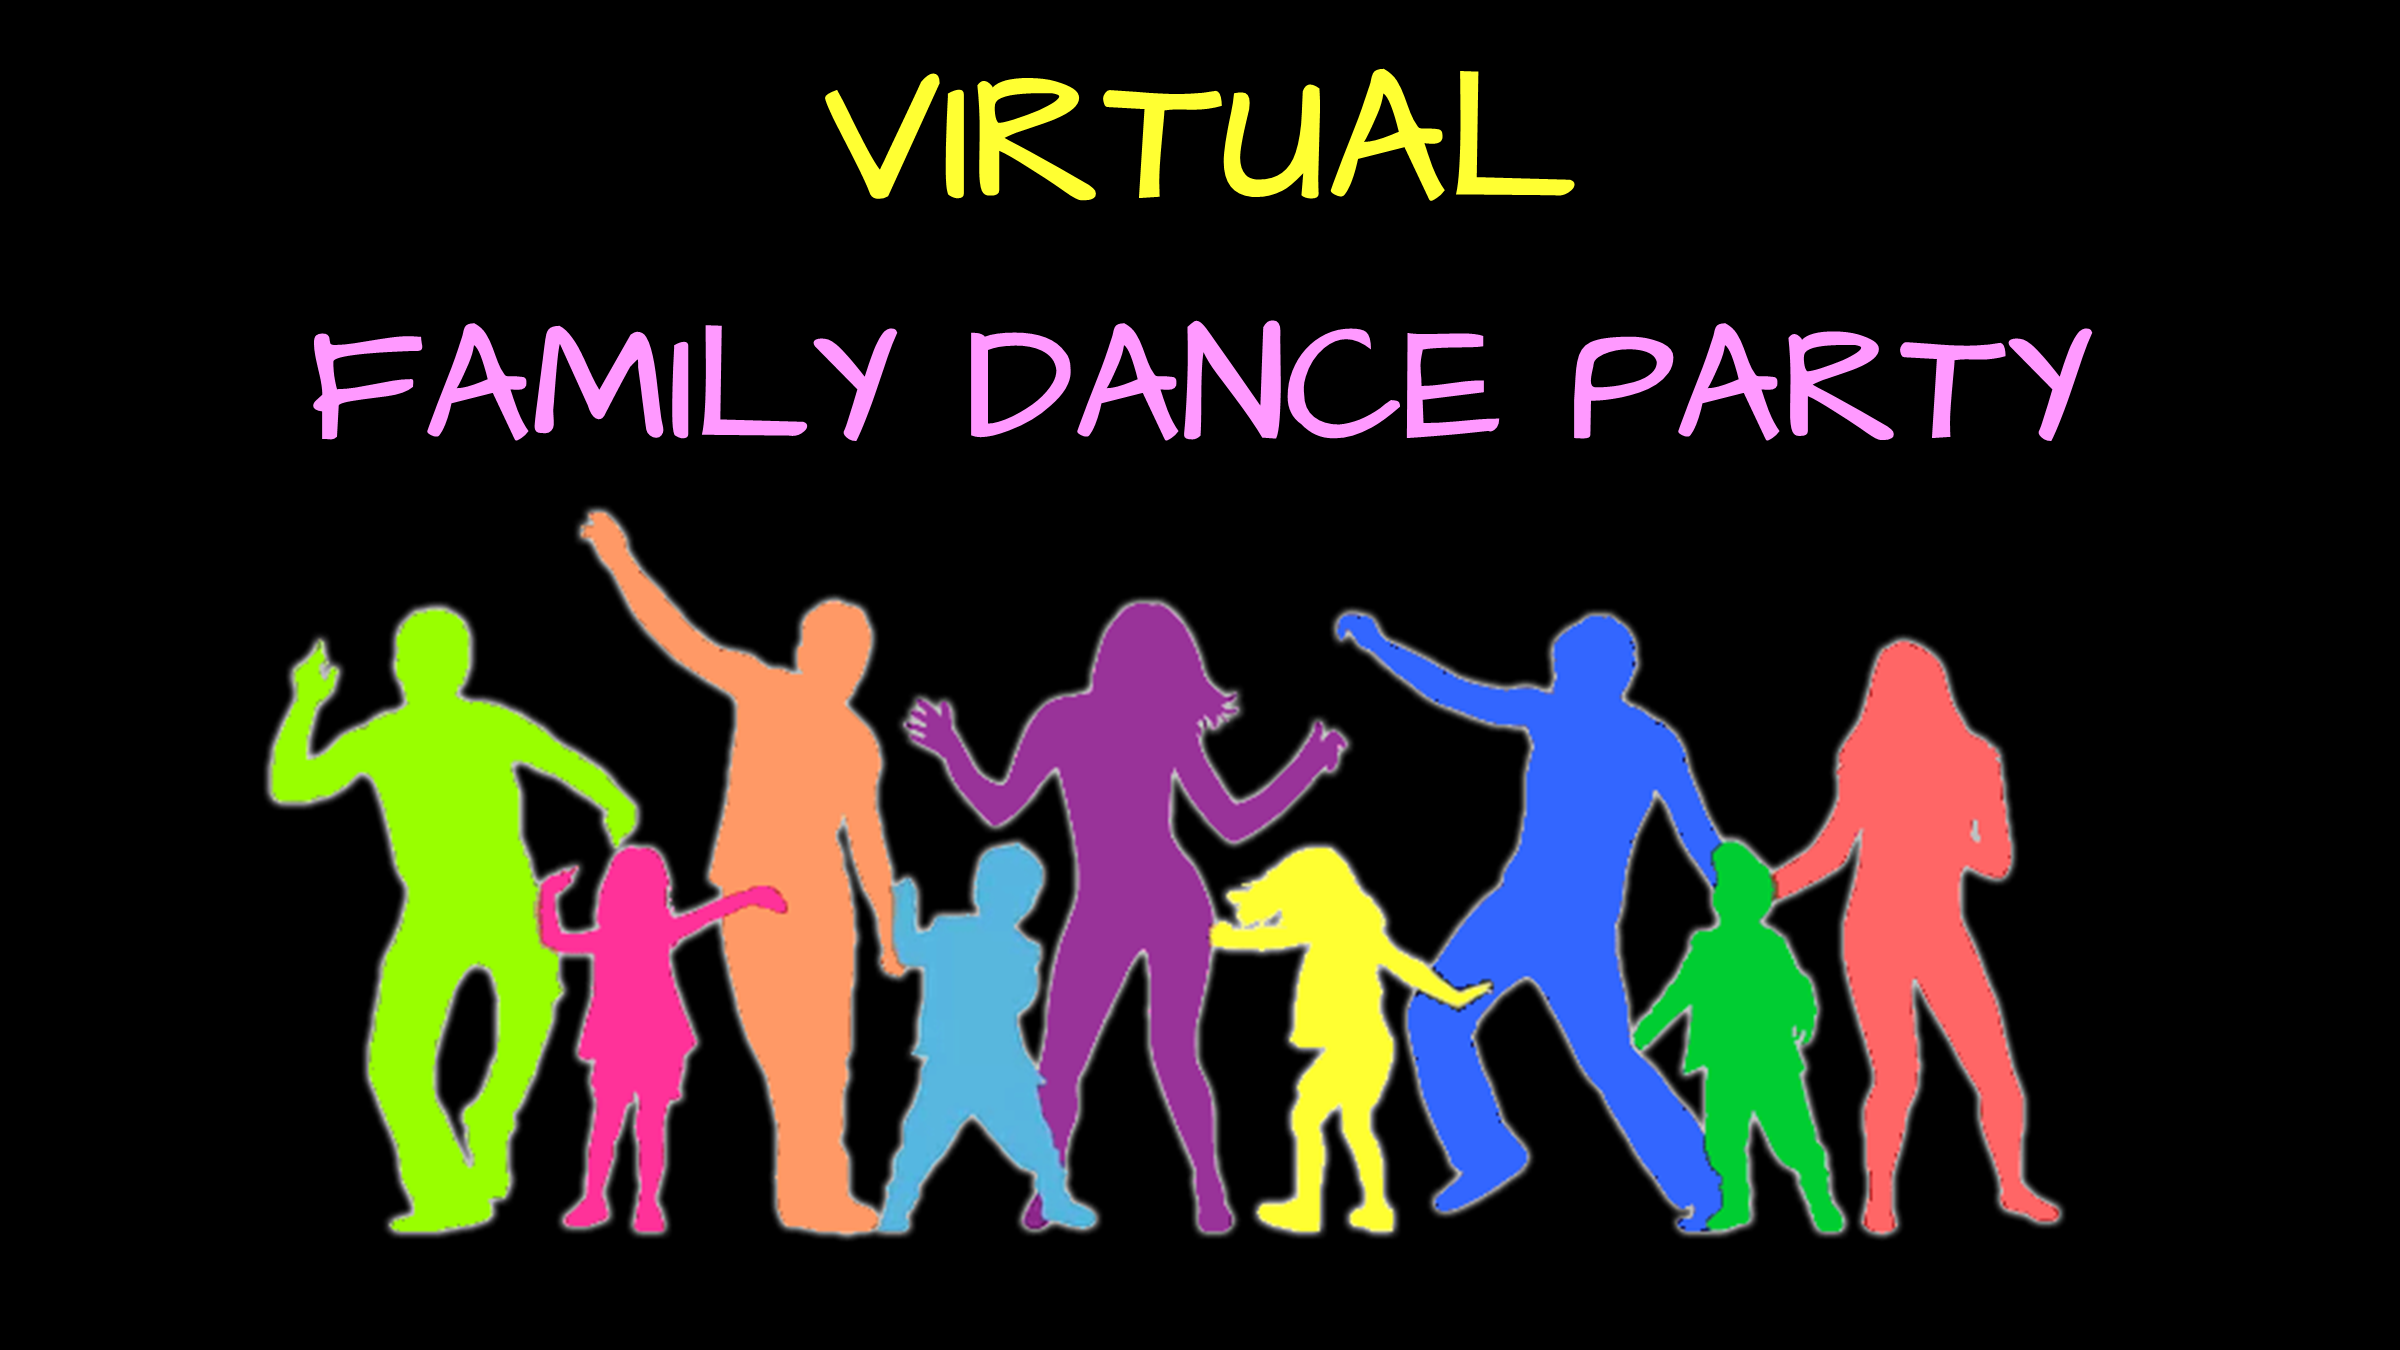 Virtual - Family Dance Party